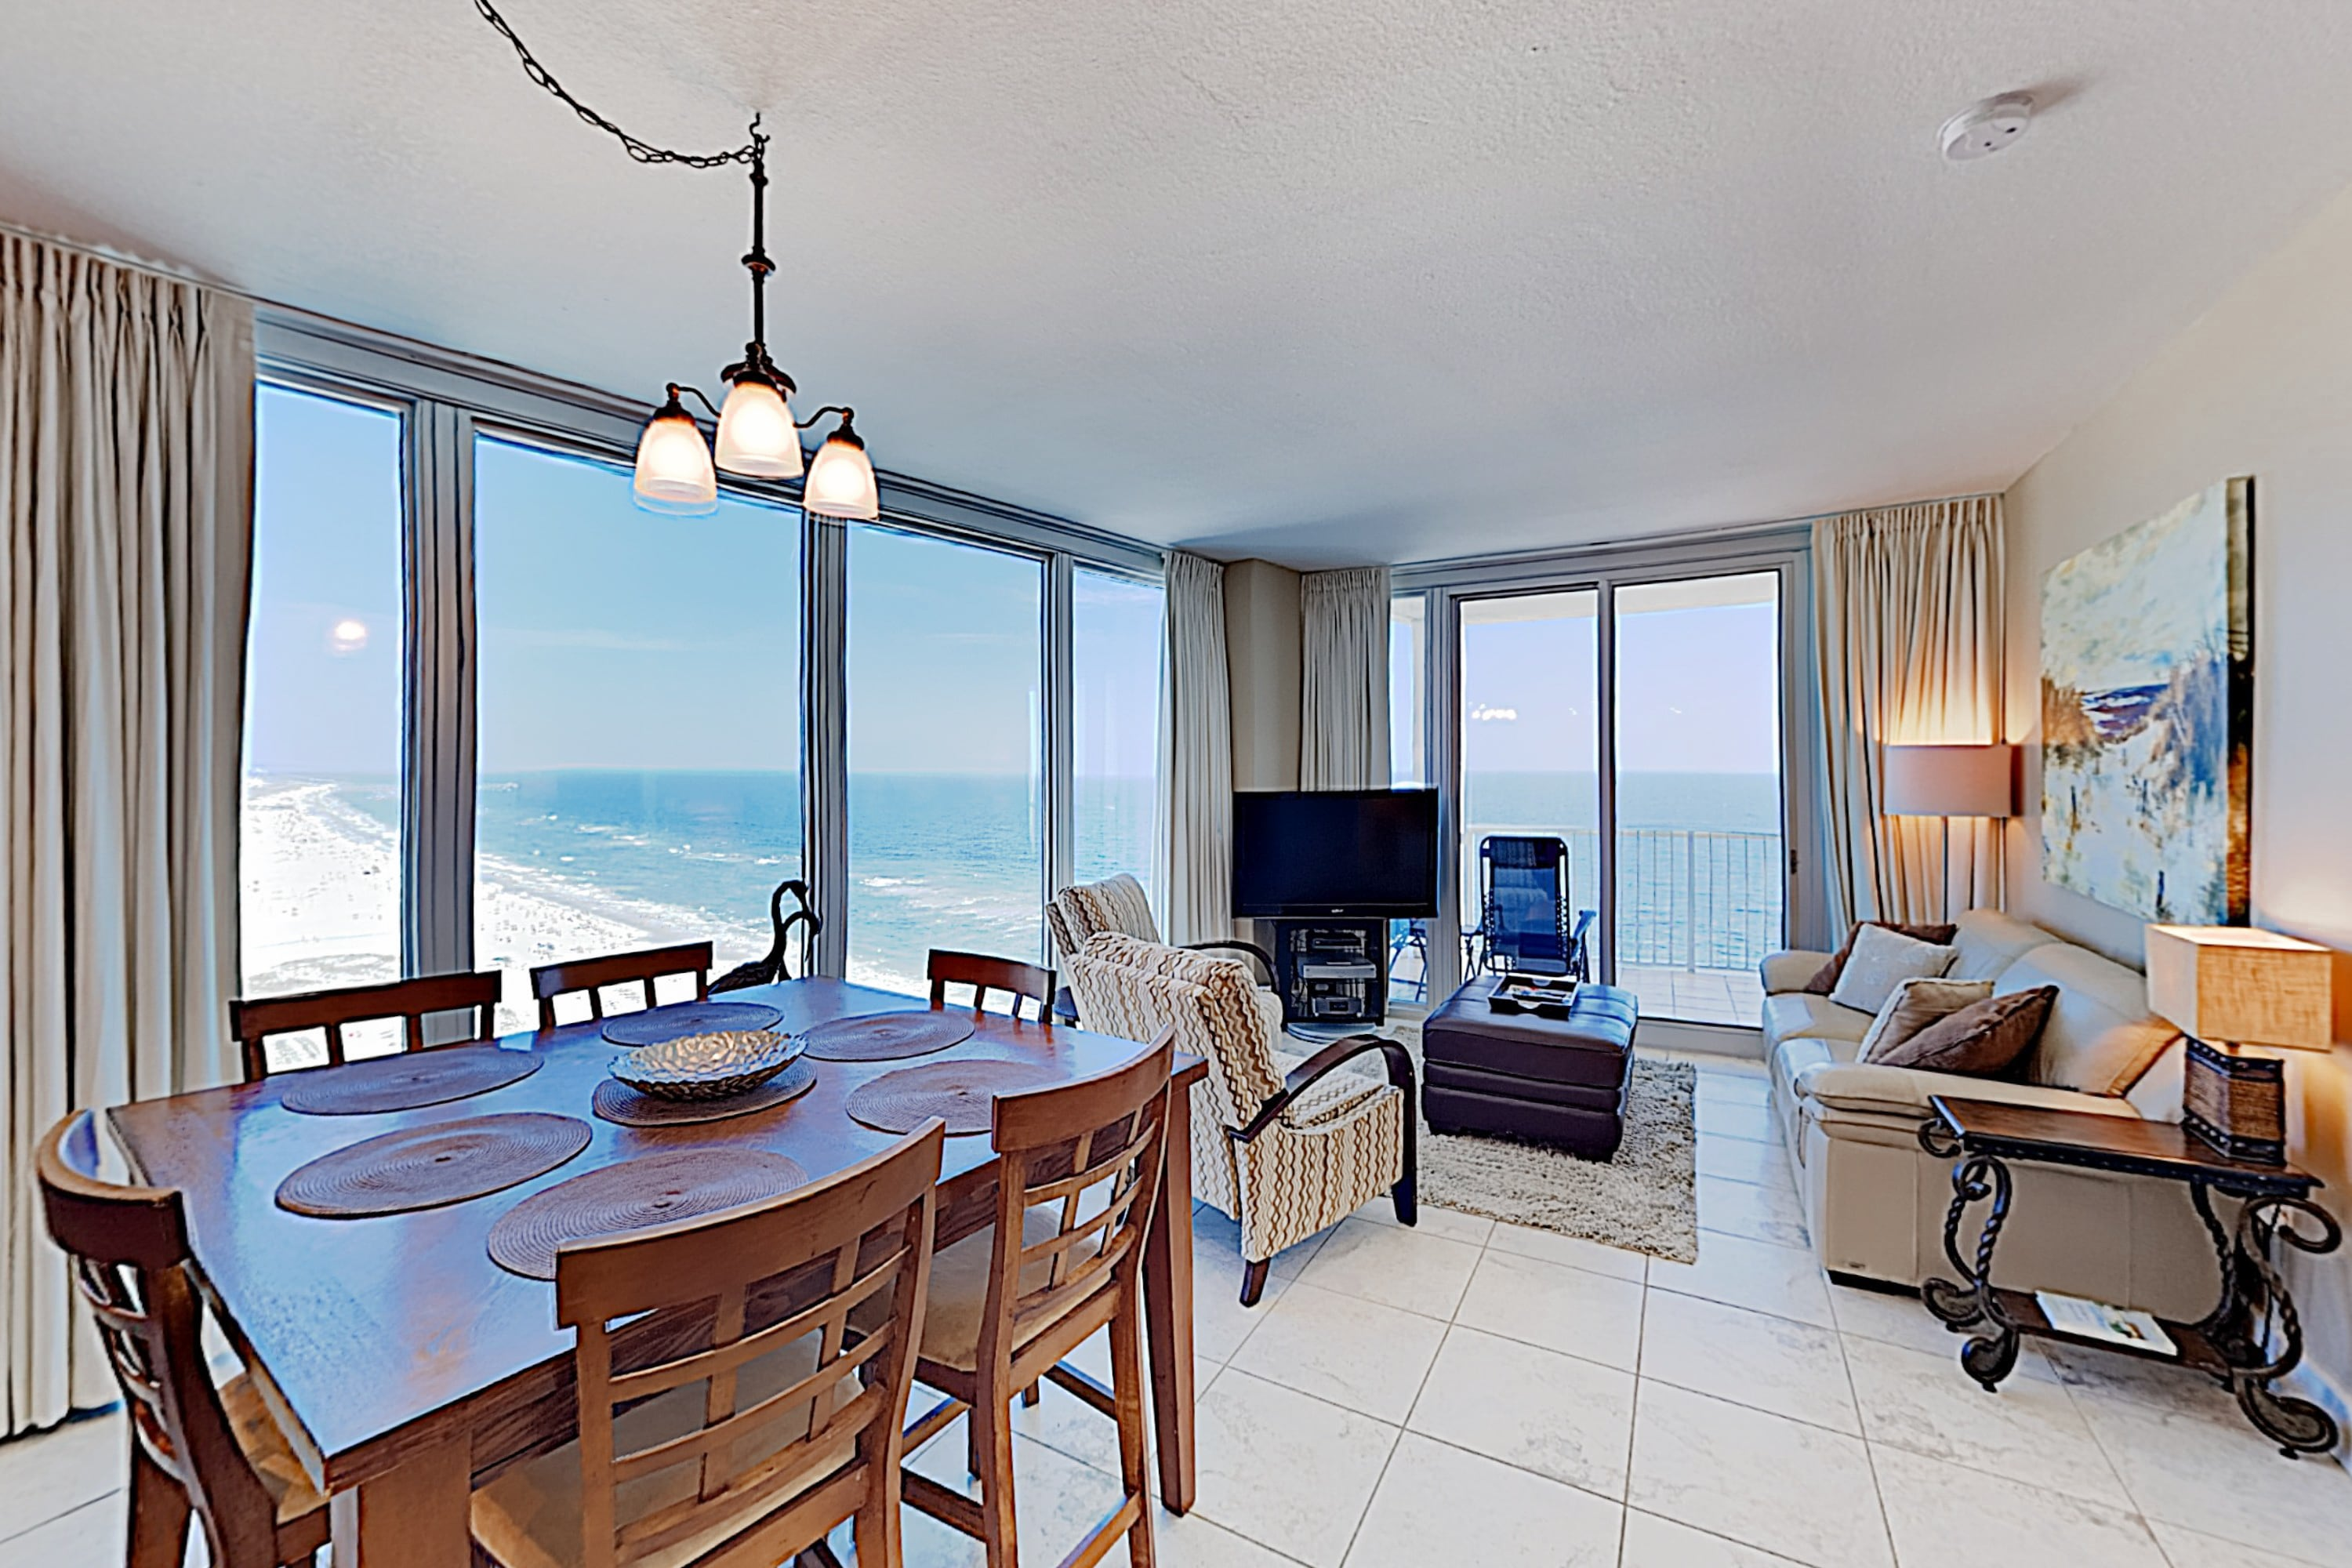 Welcome to Gulf Shores! Your condo is professionally managed by TurnKey Vacation Rentals.